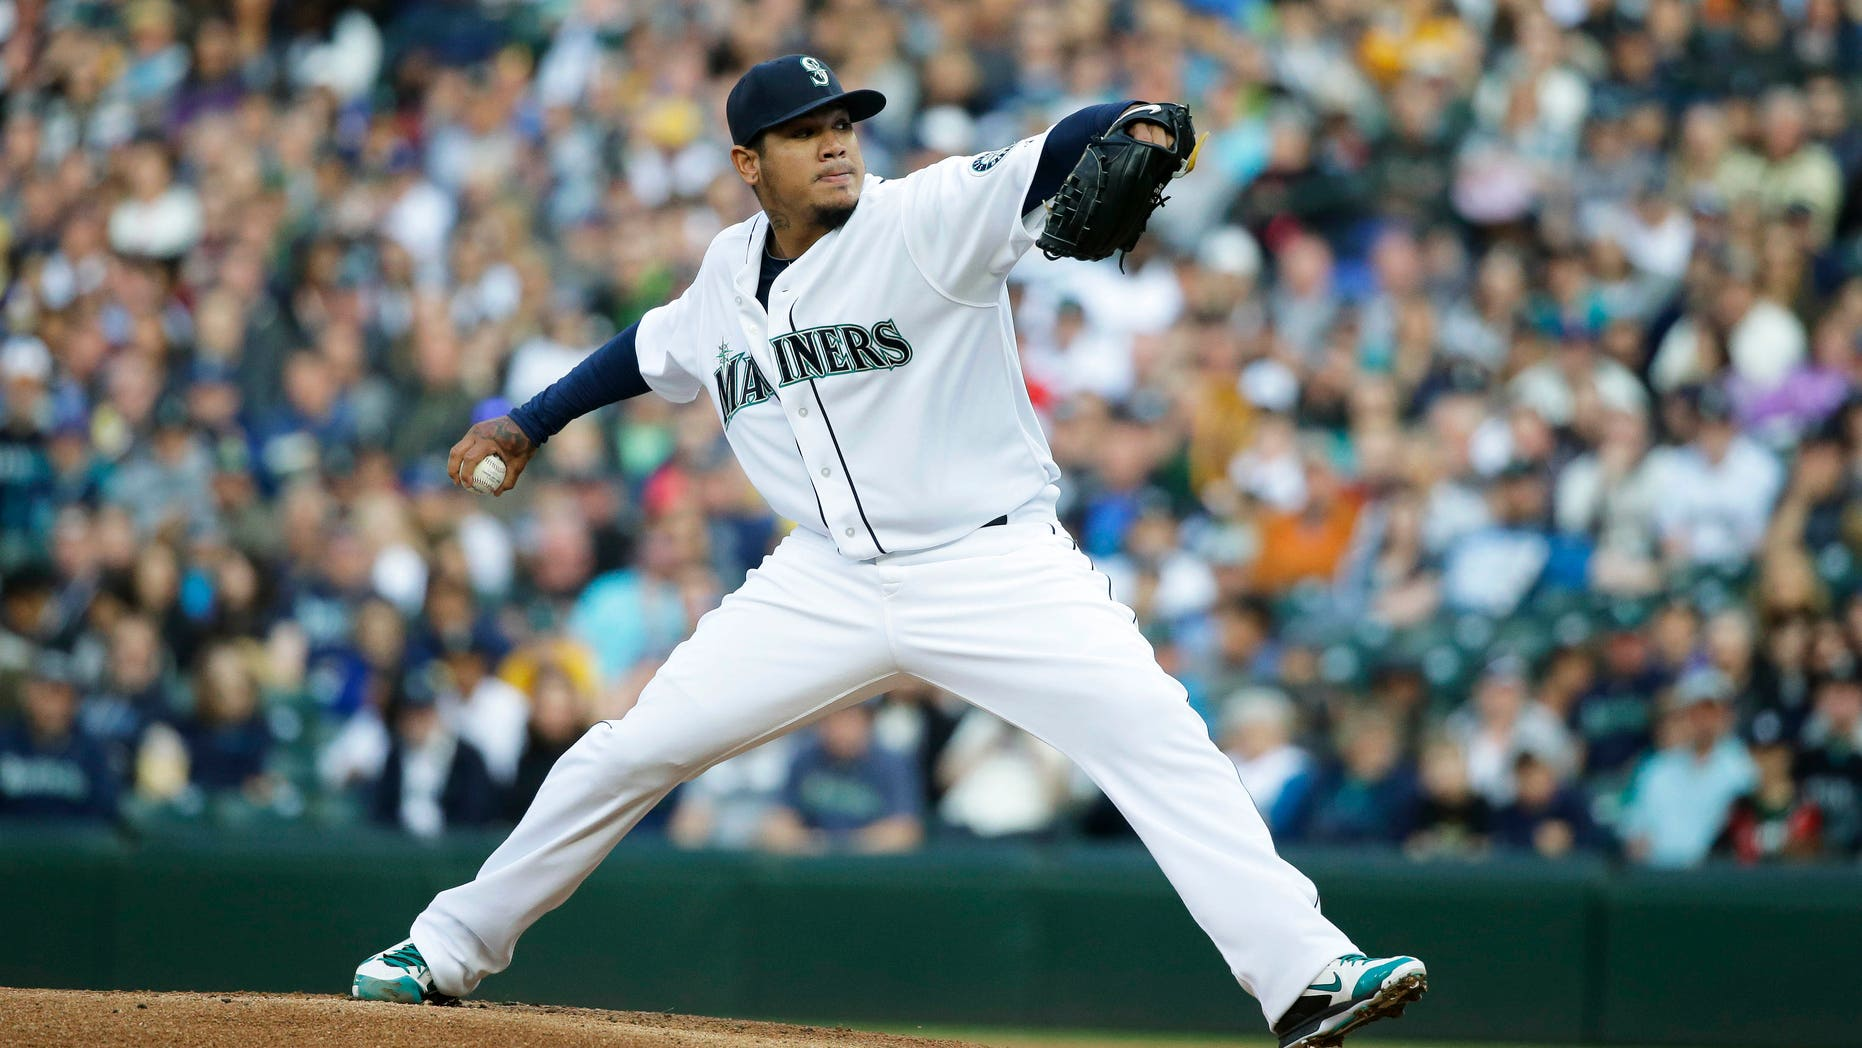 Seattle Mariners starting pitcher Felix Hernandez throws against the Texas Rangers in the first inning of a baseball game, Saturday, April 18, 2015, in Seattle. (AP Photo/Ted S. Warren)